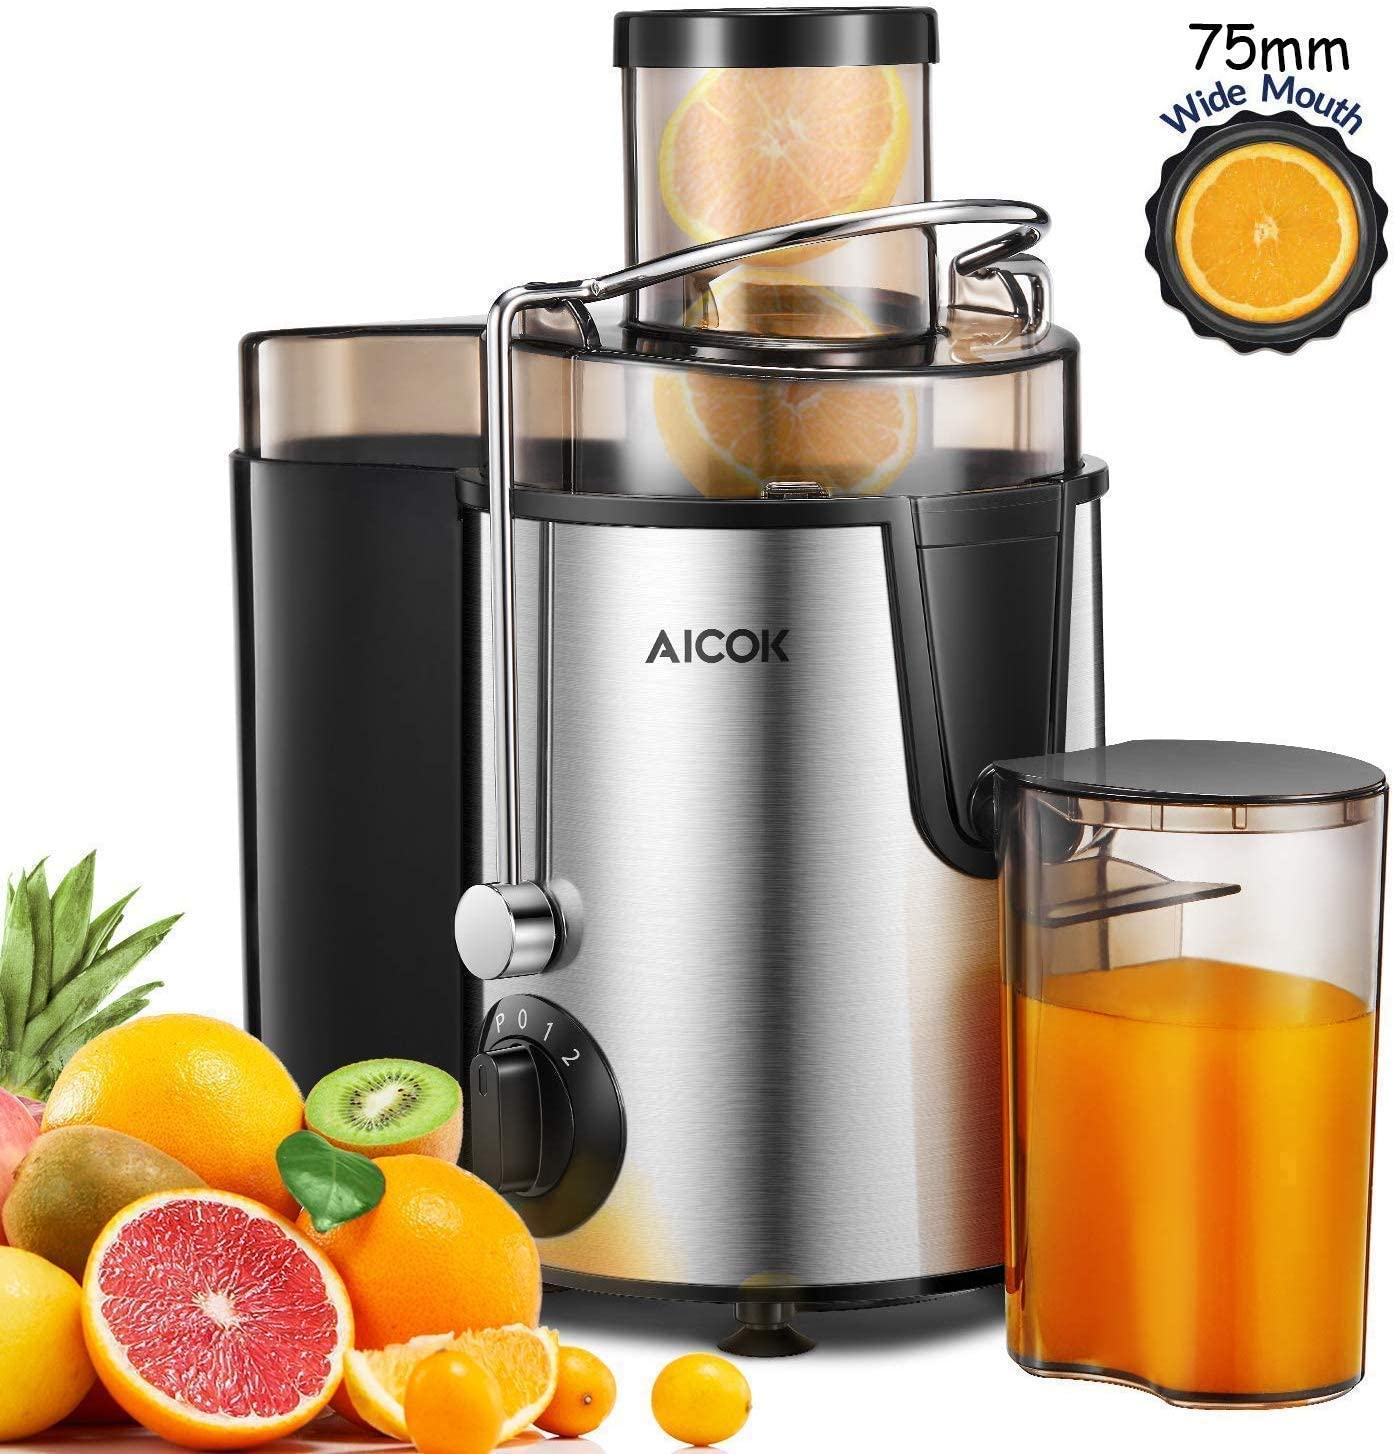 Juicer Aicok Juicers Whole Fruit and Vegetable Easy Clean, 3 Speed Juice Machine with Plus Pulse Function, Non Slip Feet, Stainless Steel and BPA Free